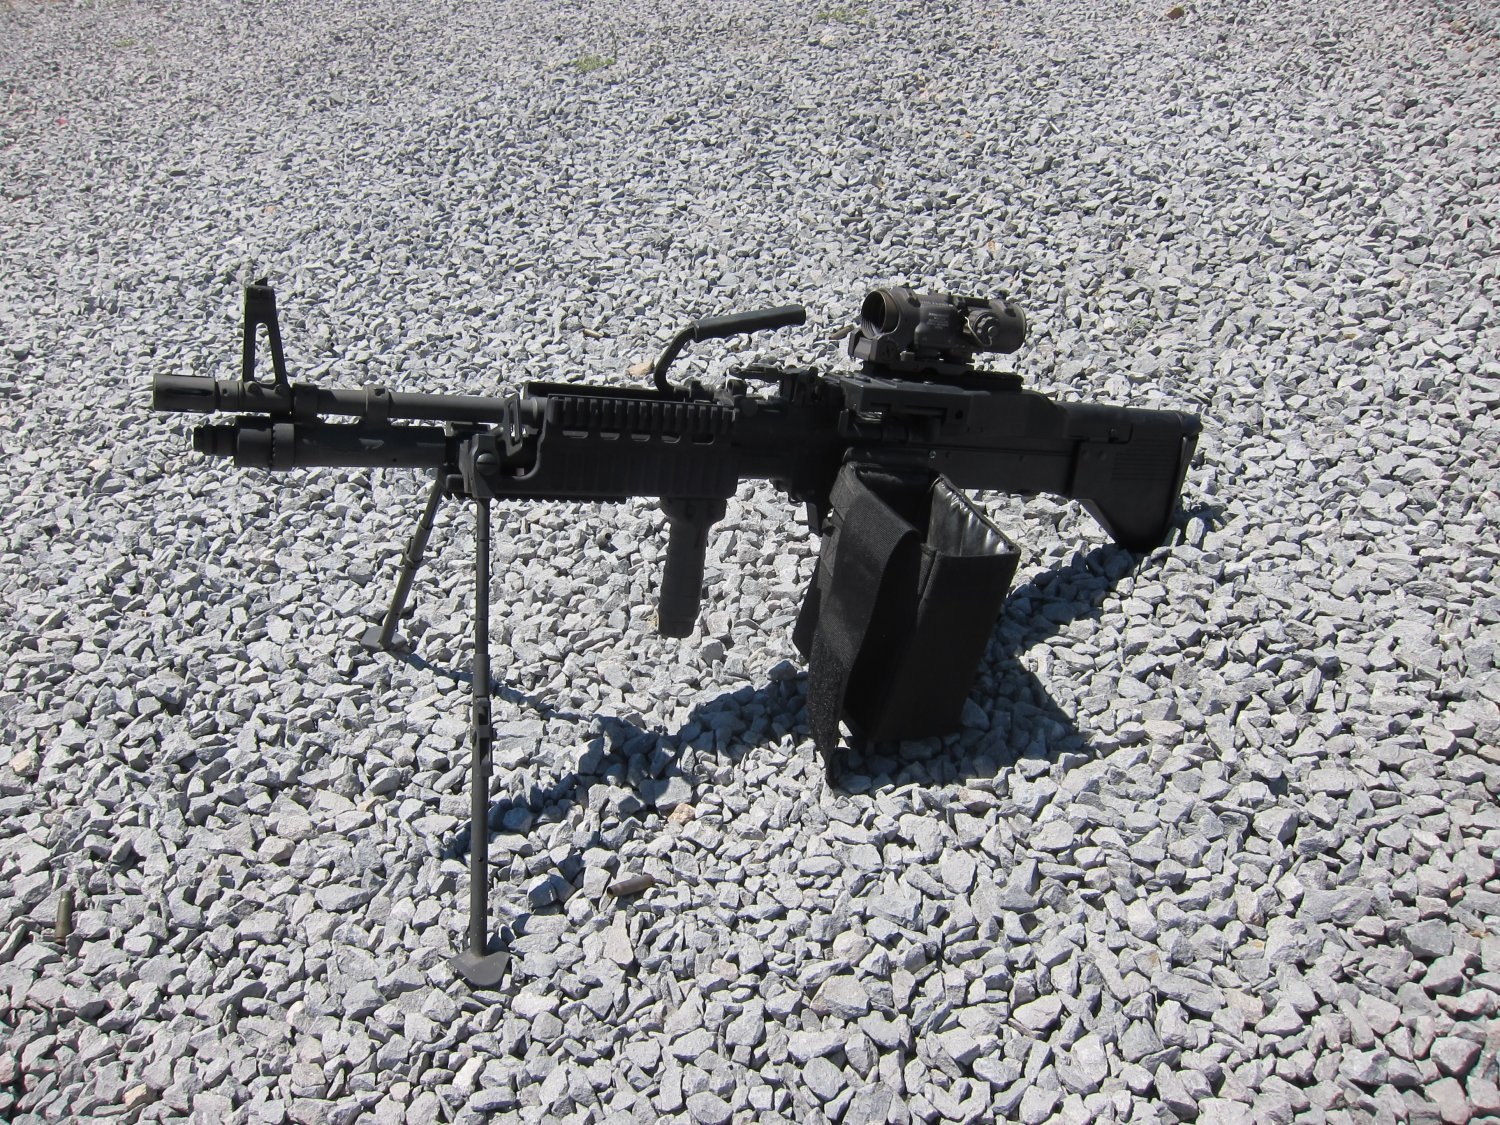 U.S. Ordnance Mk43 Mod 1 M60E4 Medium Machine Gun 7.62mm MMG 4 <!  :en  >U.S. Ordnance Mk43 Mod 1/M60E4 Commando 7.62mm NATO Medium Machine Gun (MMG) for Special Operations Forces (U.S. Navy SEALs): Latest Version Weapon Gets Test Fired at the Range (Video!) <!  :  >